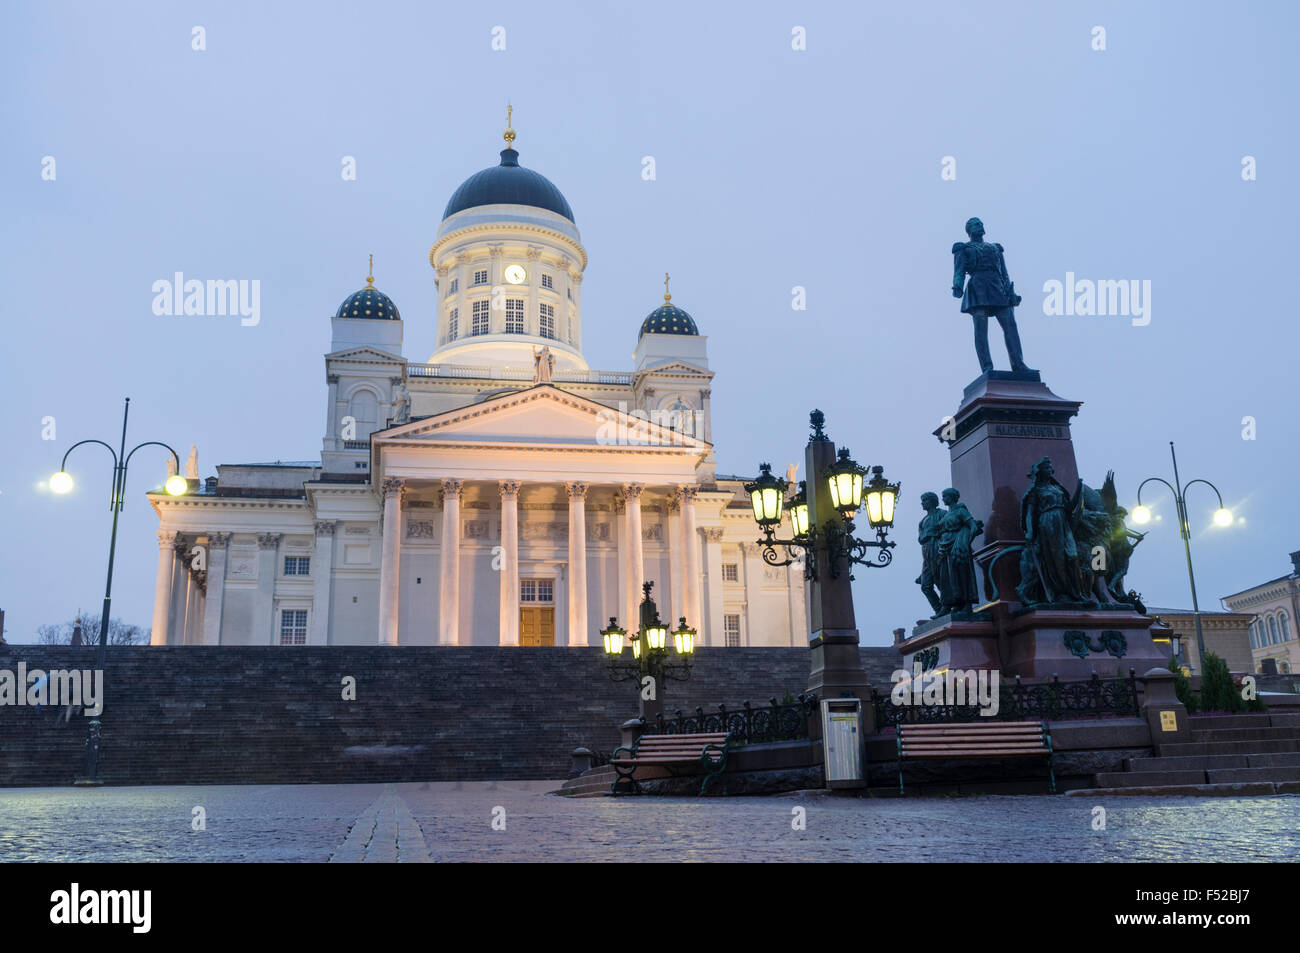 Lighted Lutheran Cathedral and statue of Tsar Alexander II at dusk. Senate square, Helsinki, Finland - Stock Image